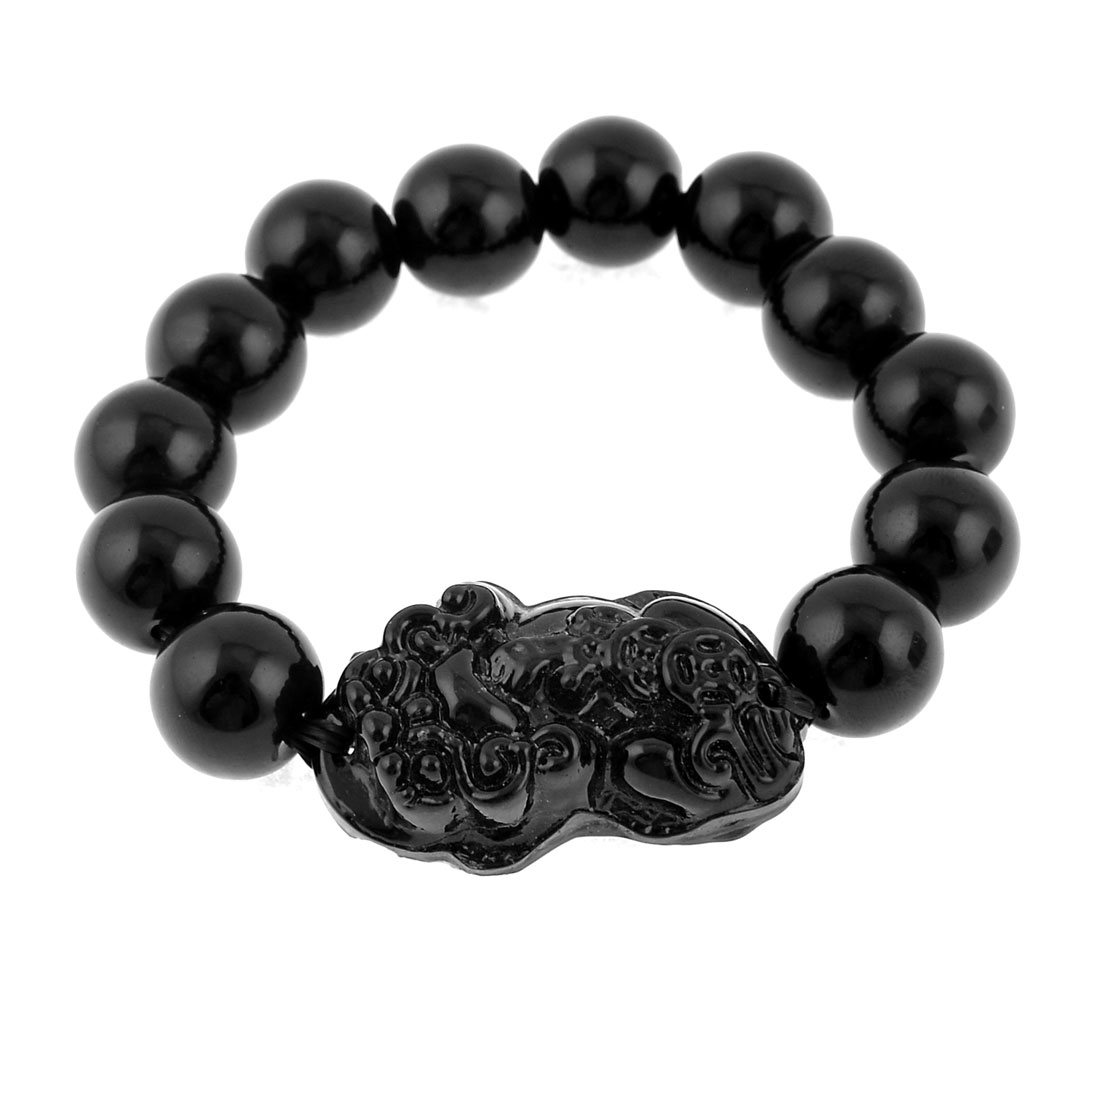 Black Round Shaped Buddha Character Beads Stretch Bracelet for Woman